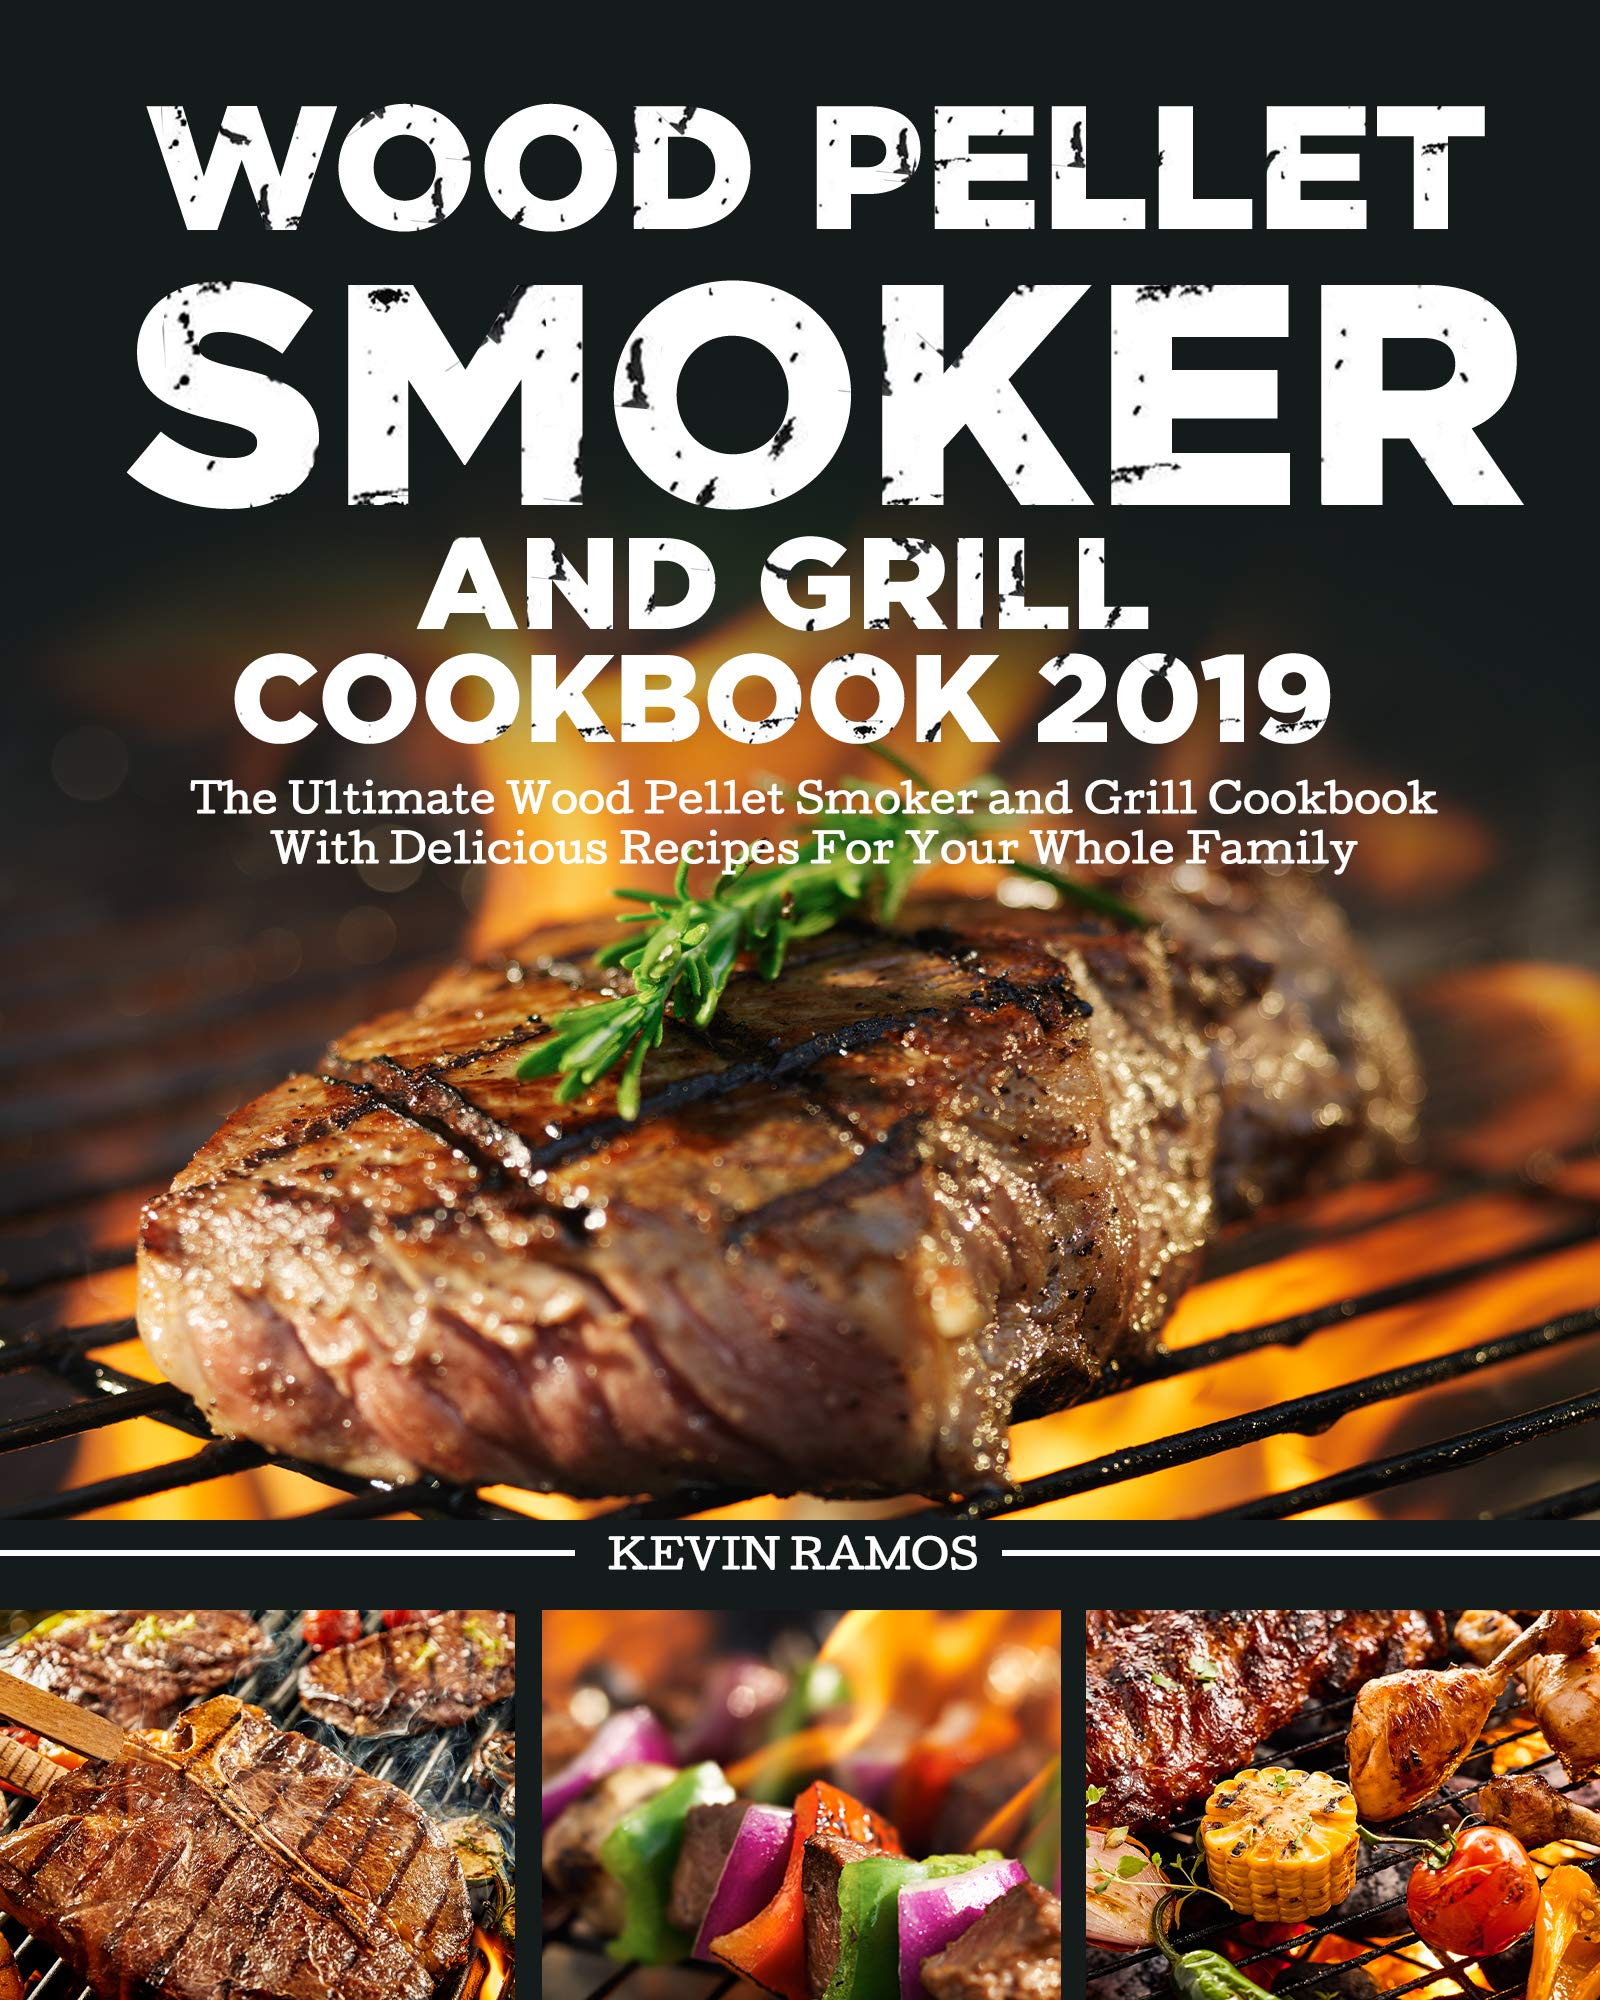 Wood Pellet Smoker And Grill Cookbook 2019: The Ultimate Wood Pellet Smoker And Grill Cookbook With Delicious Recipes For ...